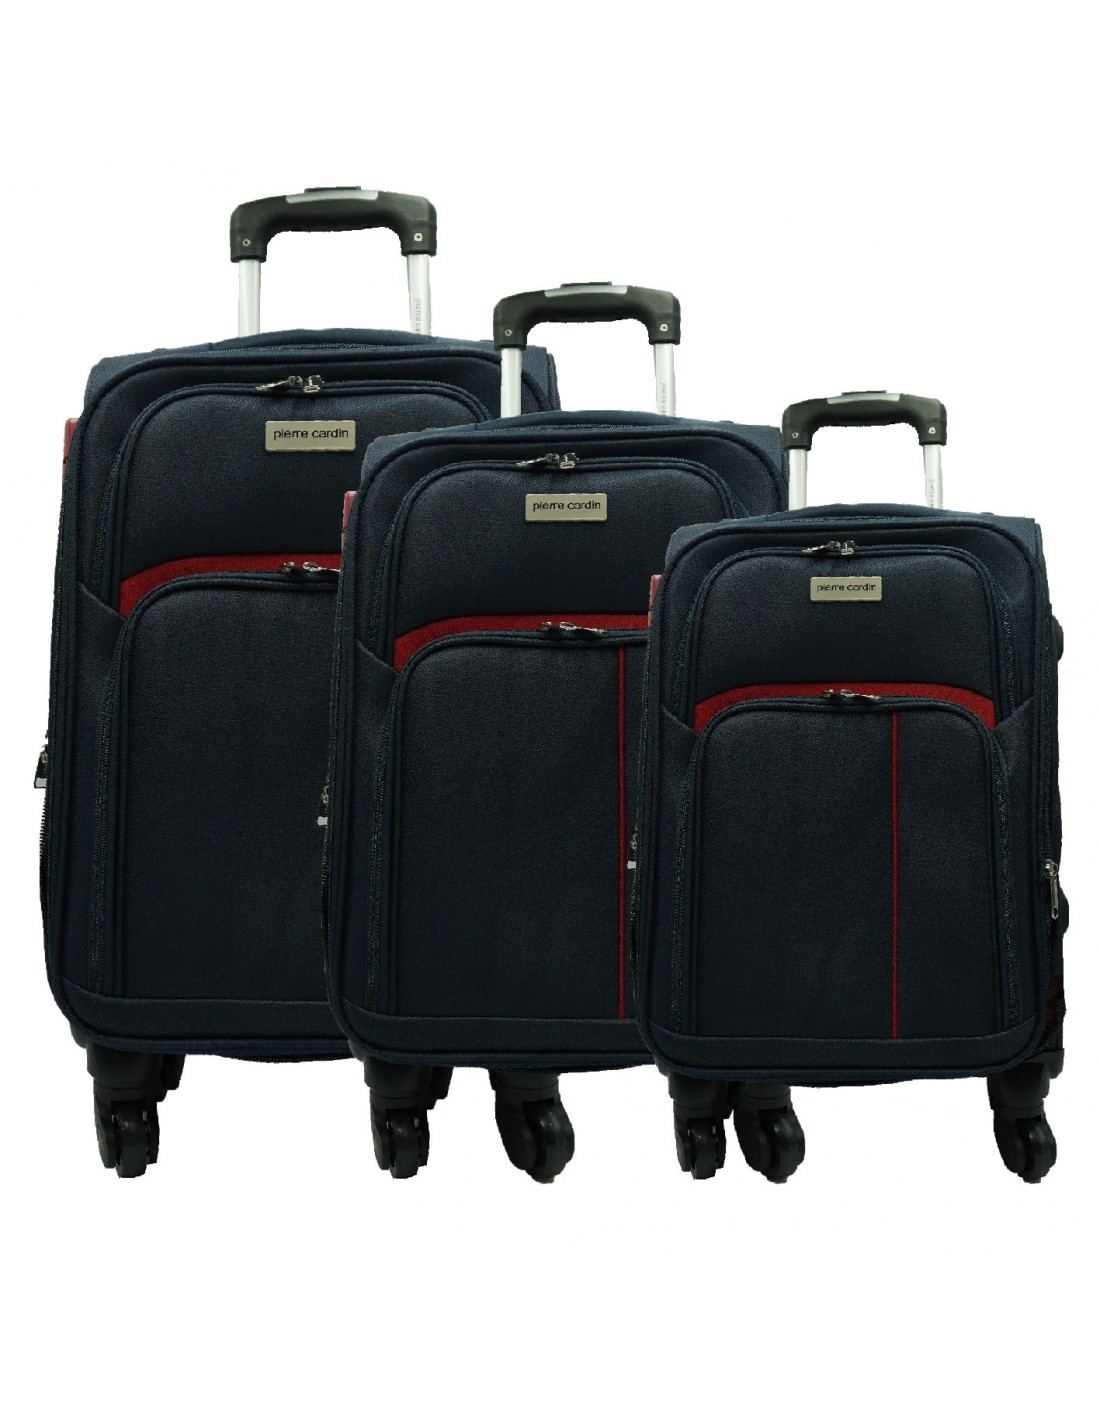 SET TROLLEY 3 PCS